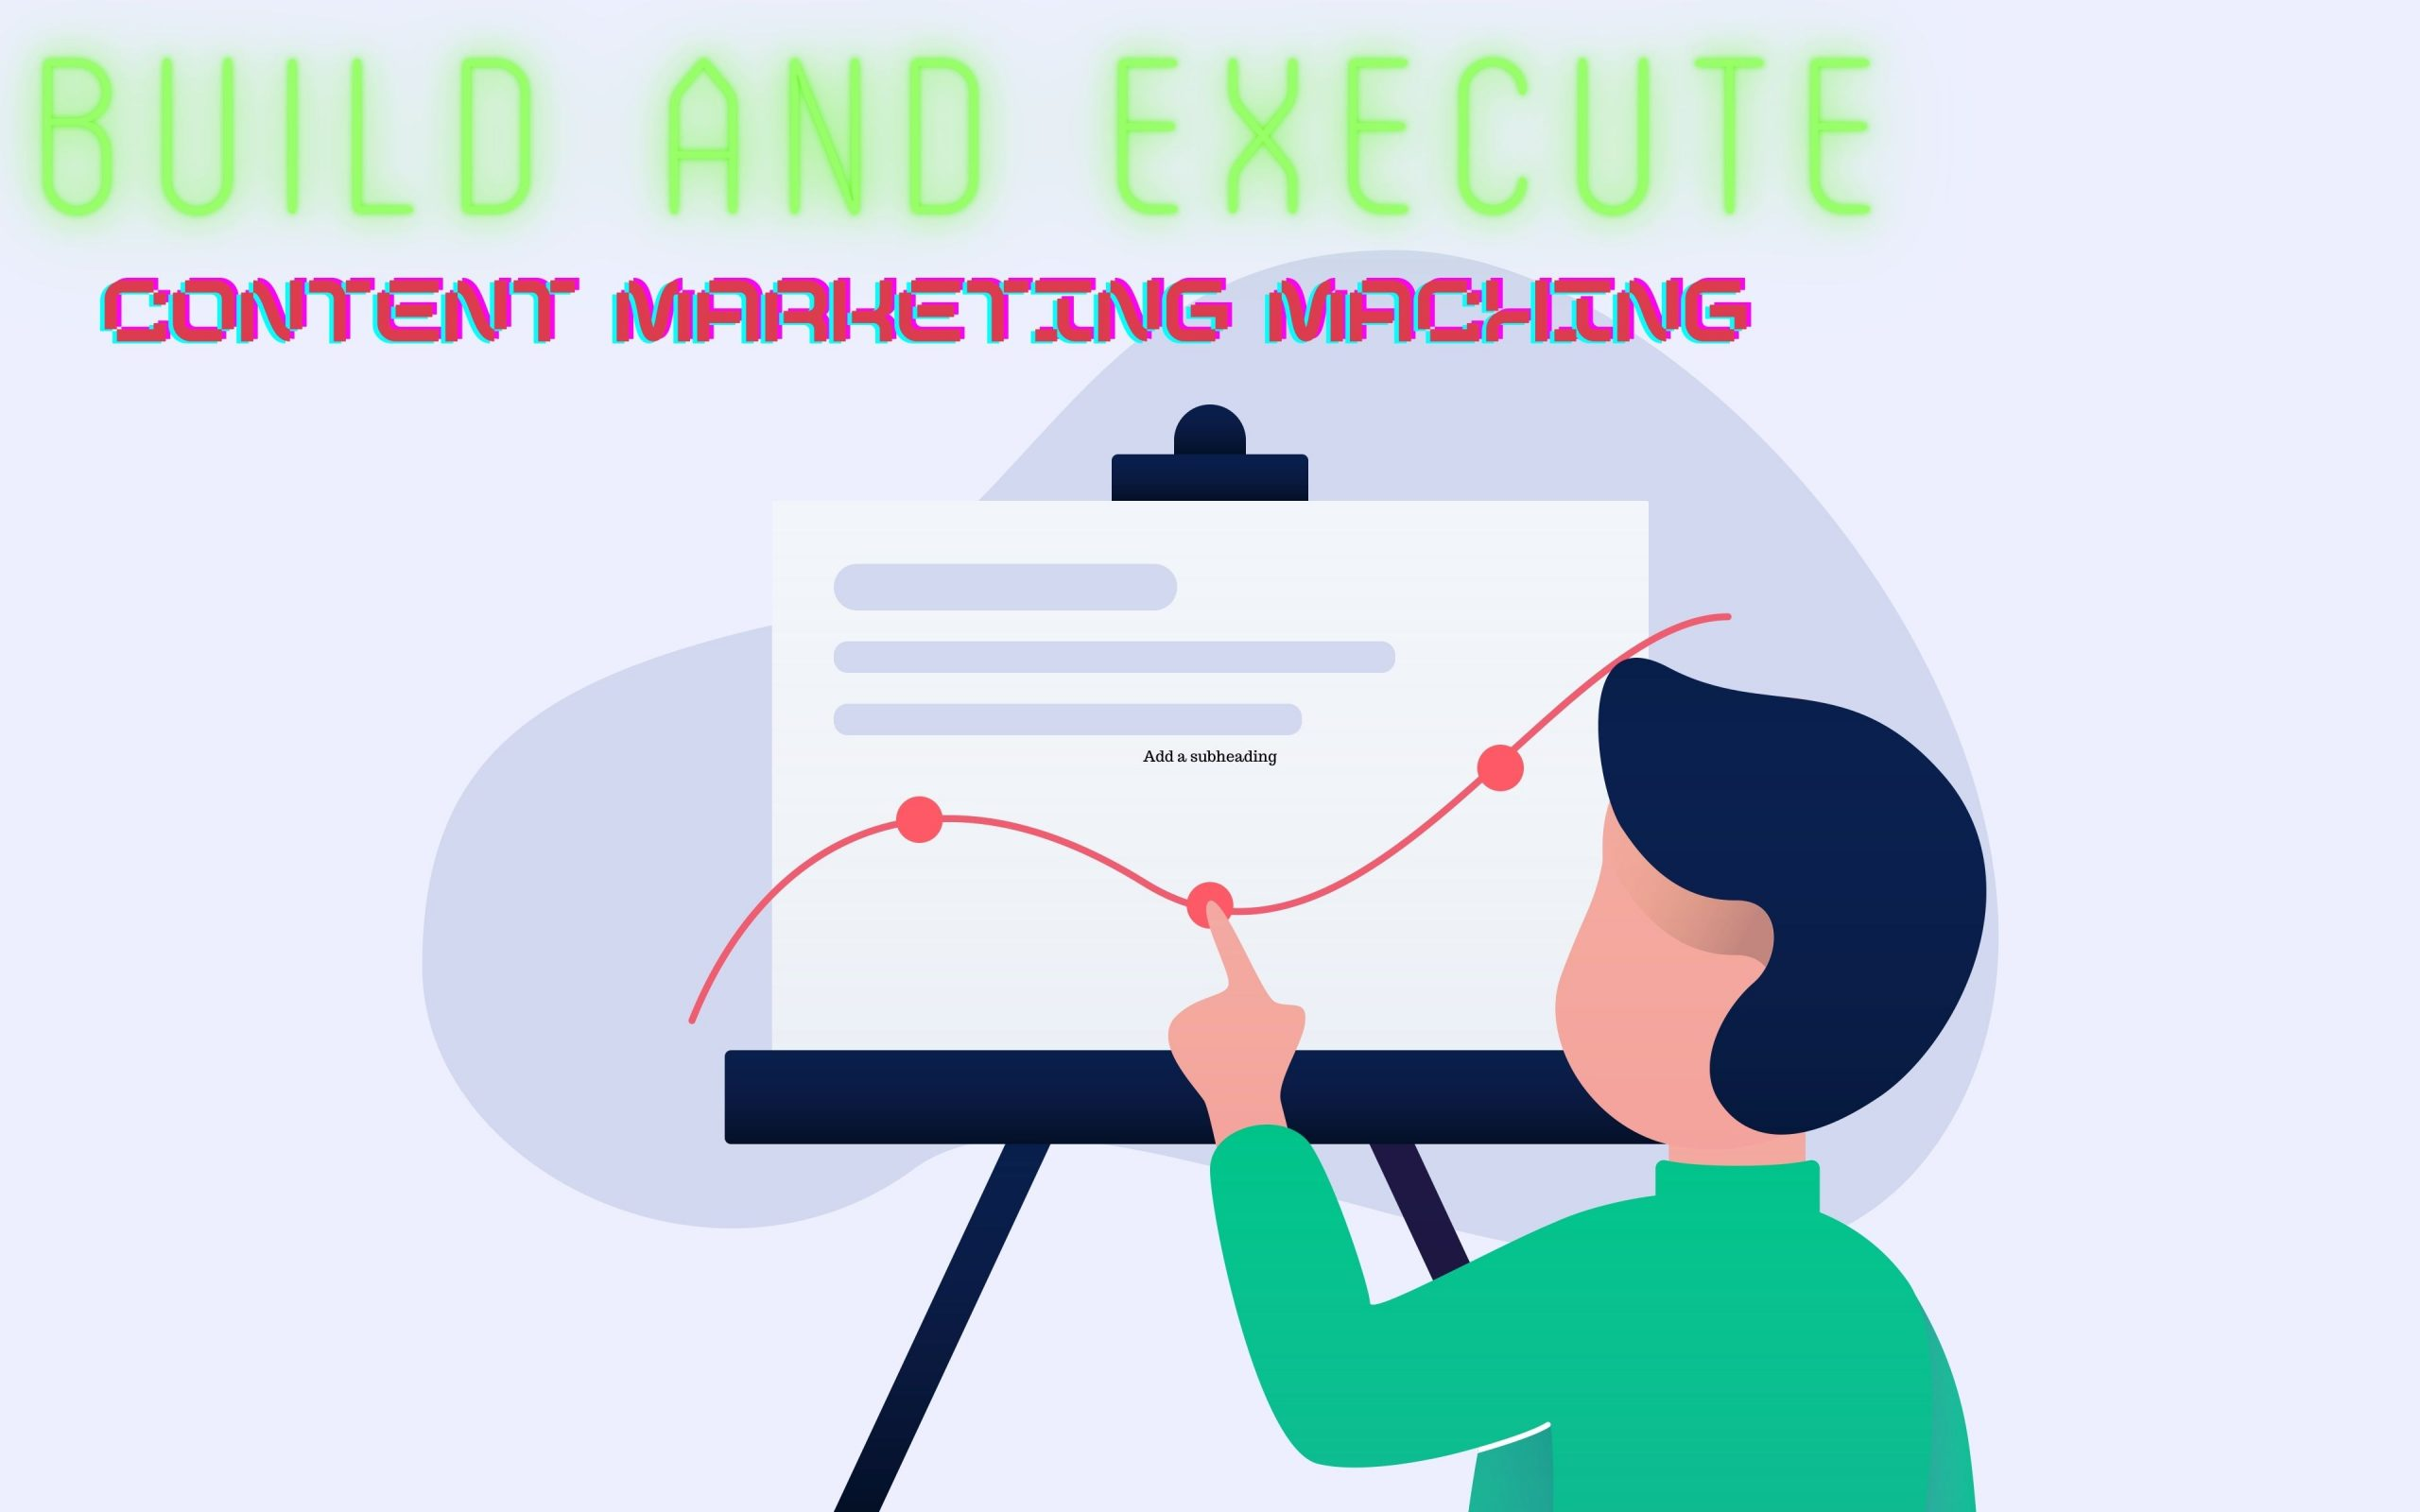 Build and execute Content Marketing Machine